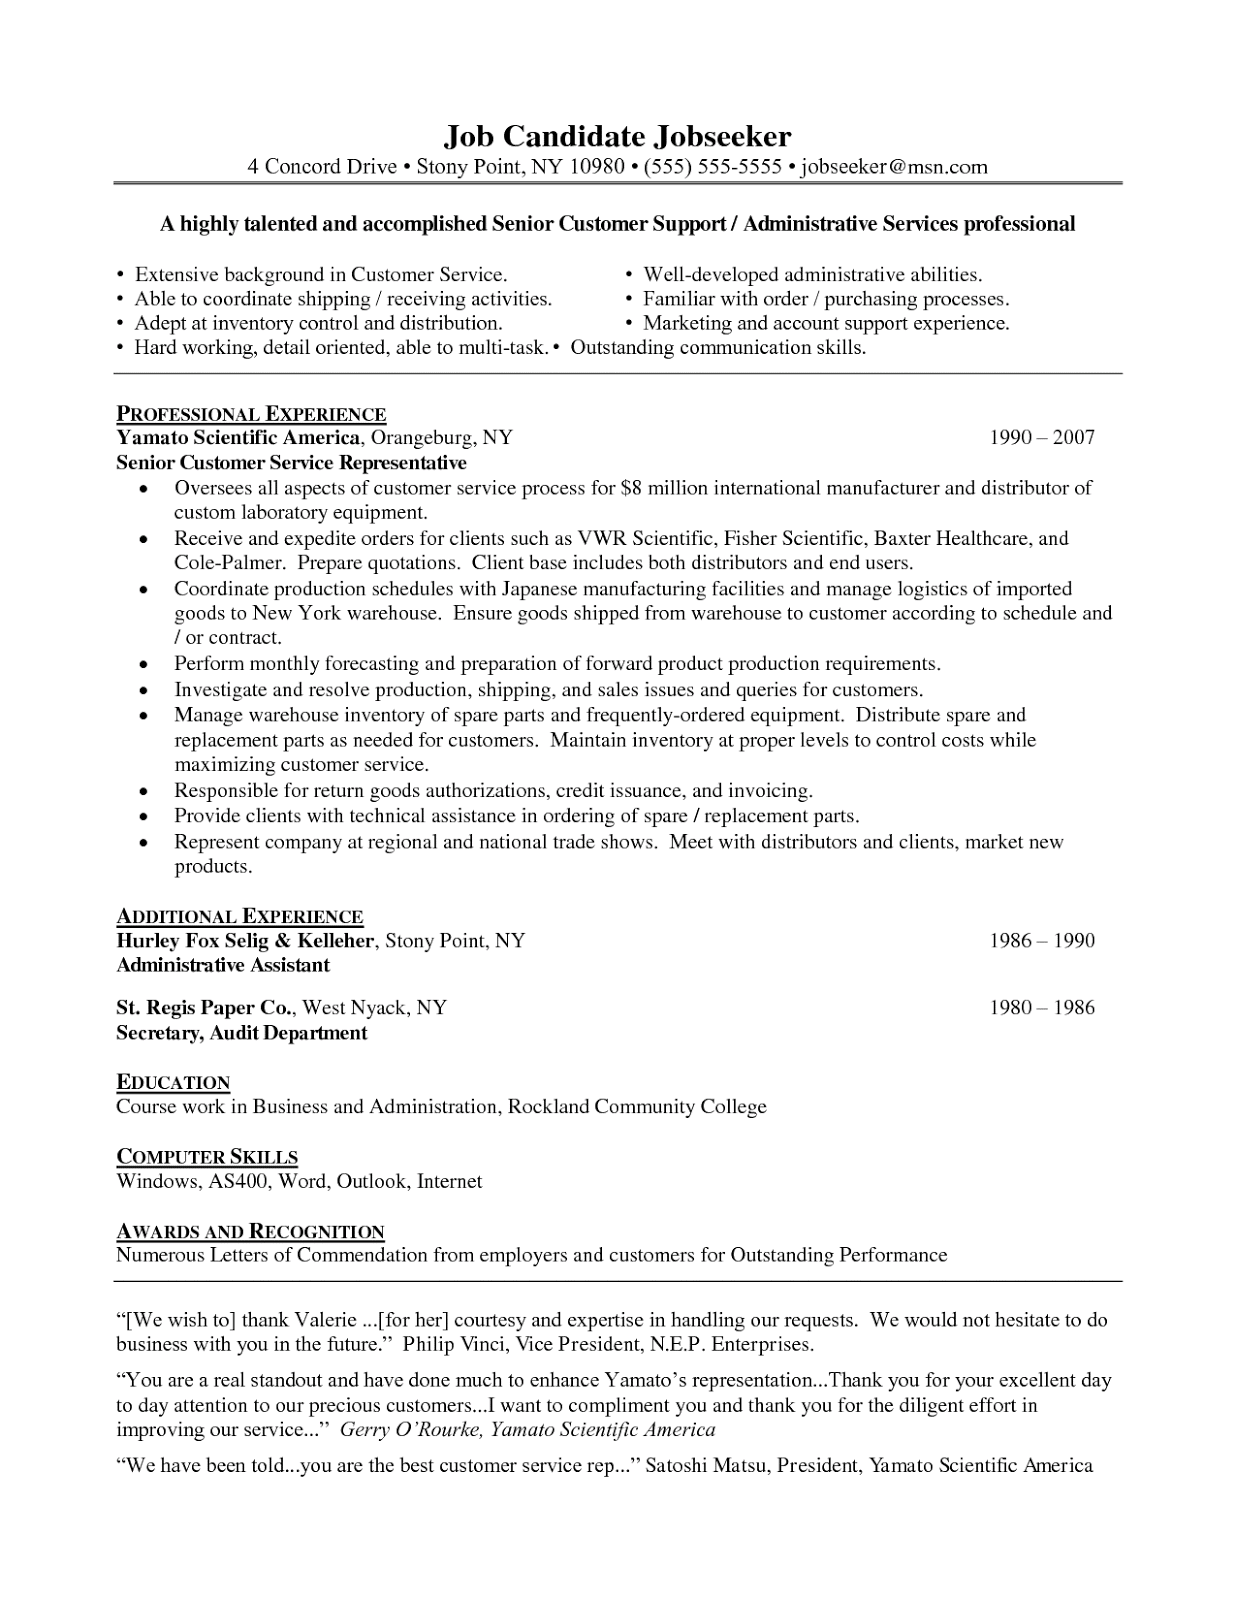 Resume Objective Statement For Customer Service  resume sample     ariananovin co customer service resume objectives examples resume objective       resume objective examples customer service